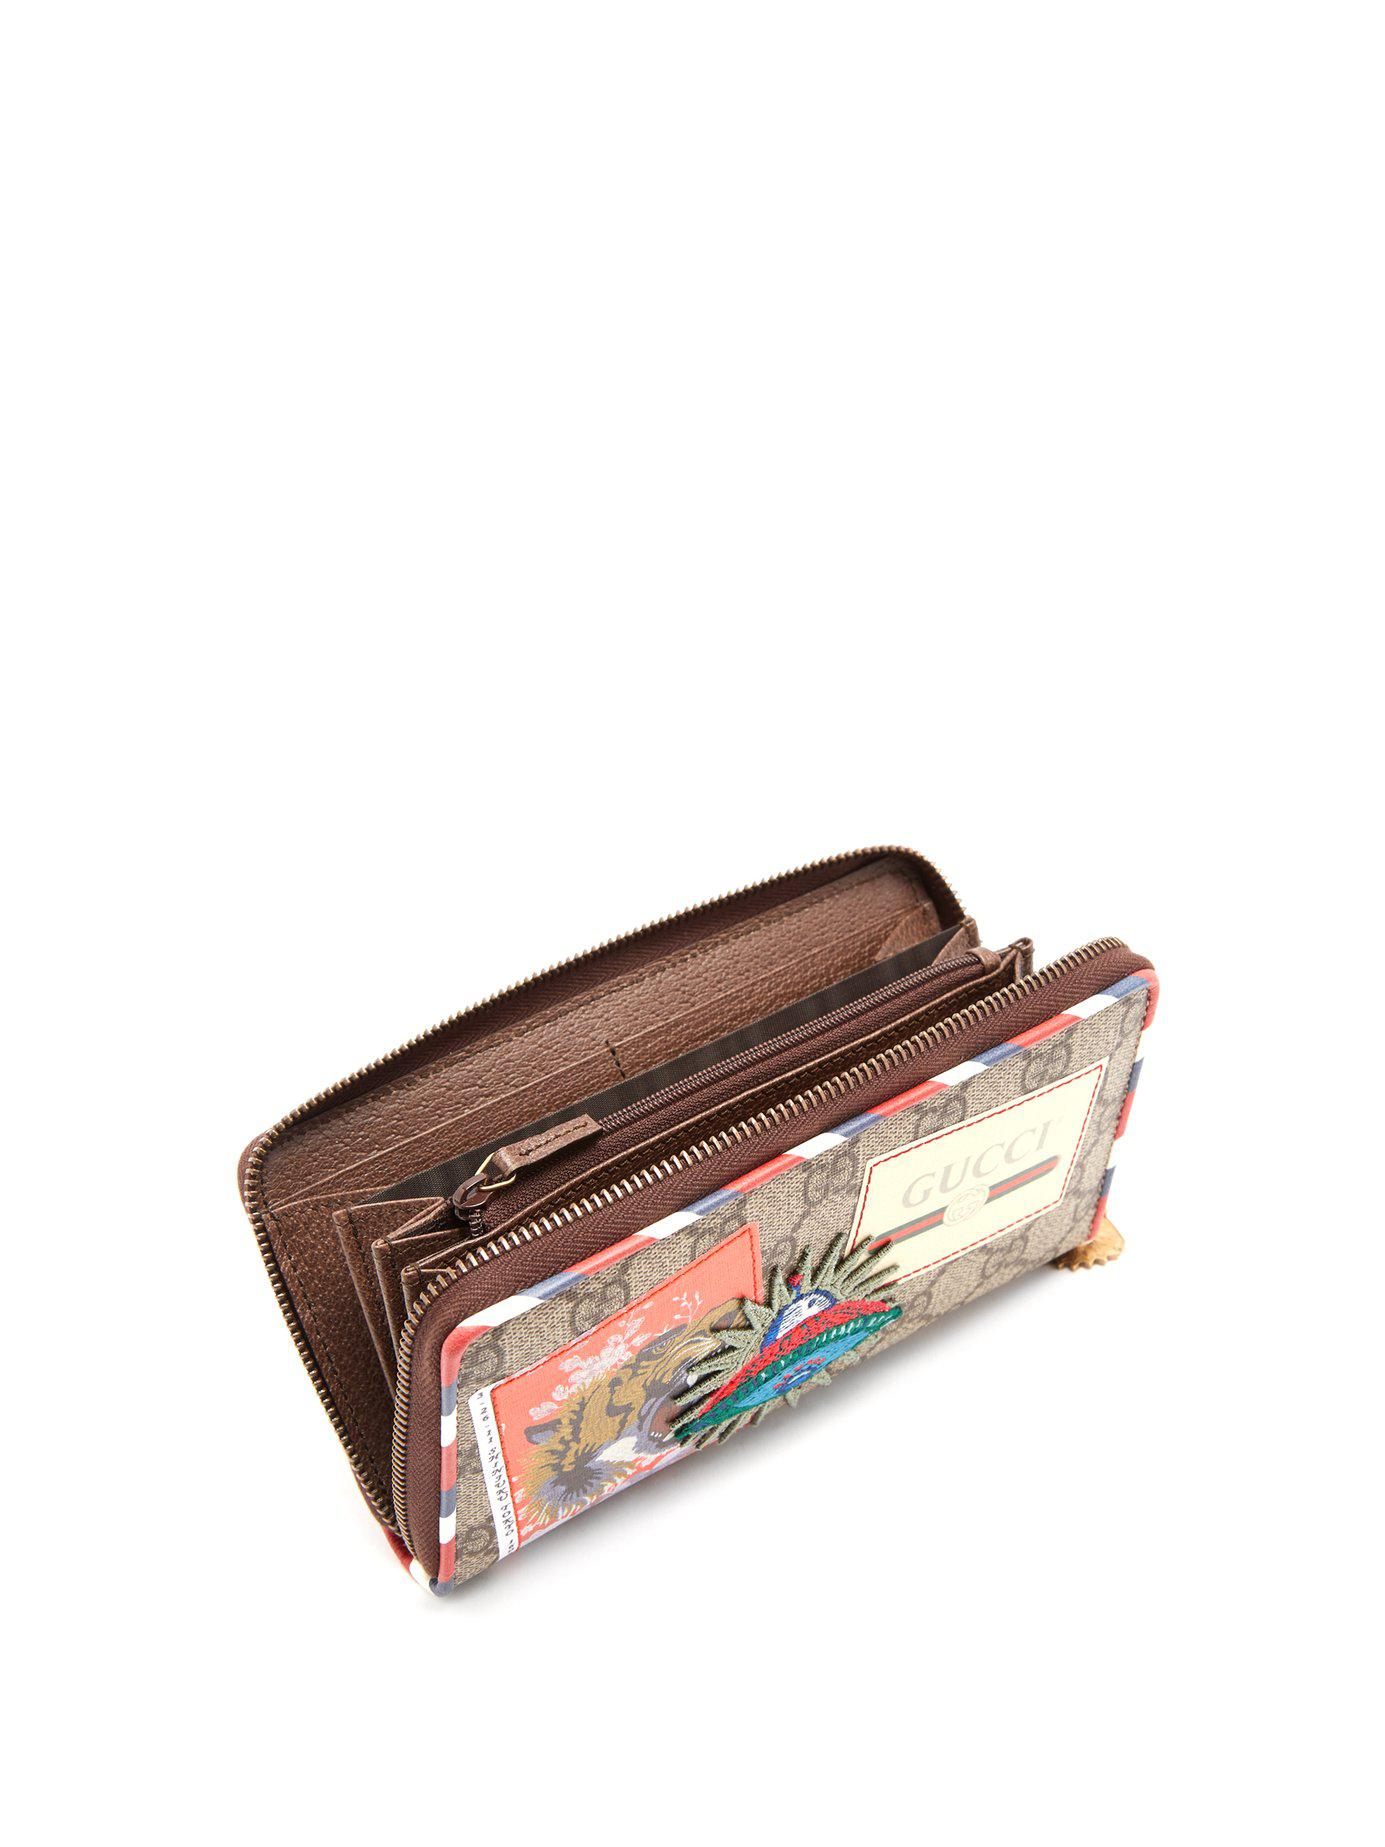 5a467986f02a Gucci - Brown Courrier Gg Supreme Zip-around Wallet for Men - Lyst. View  fullscreen